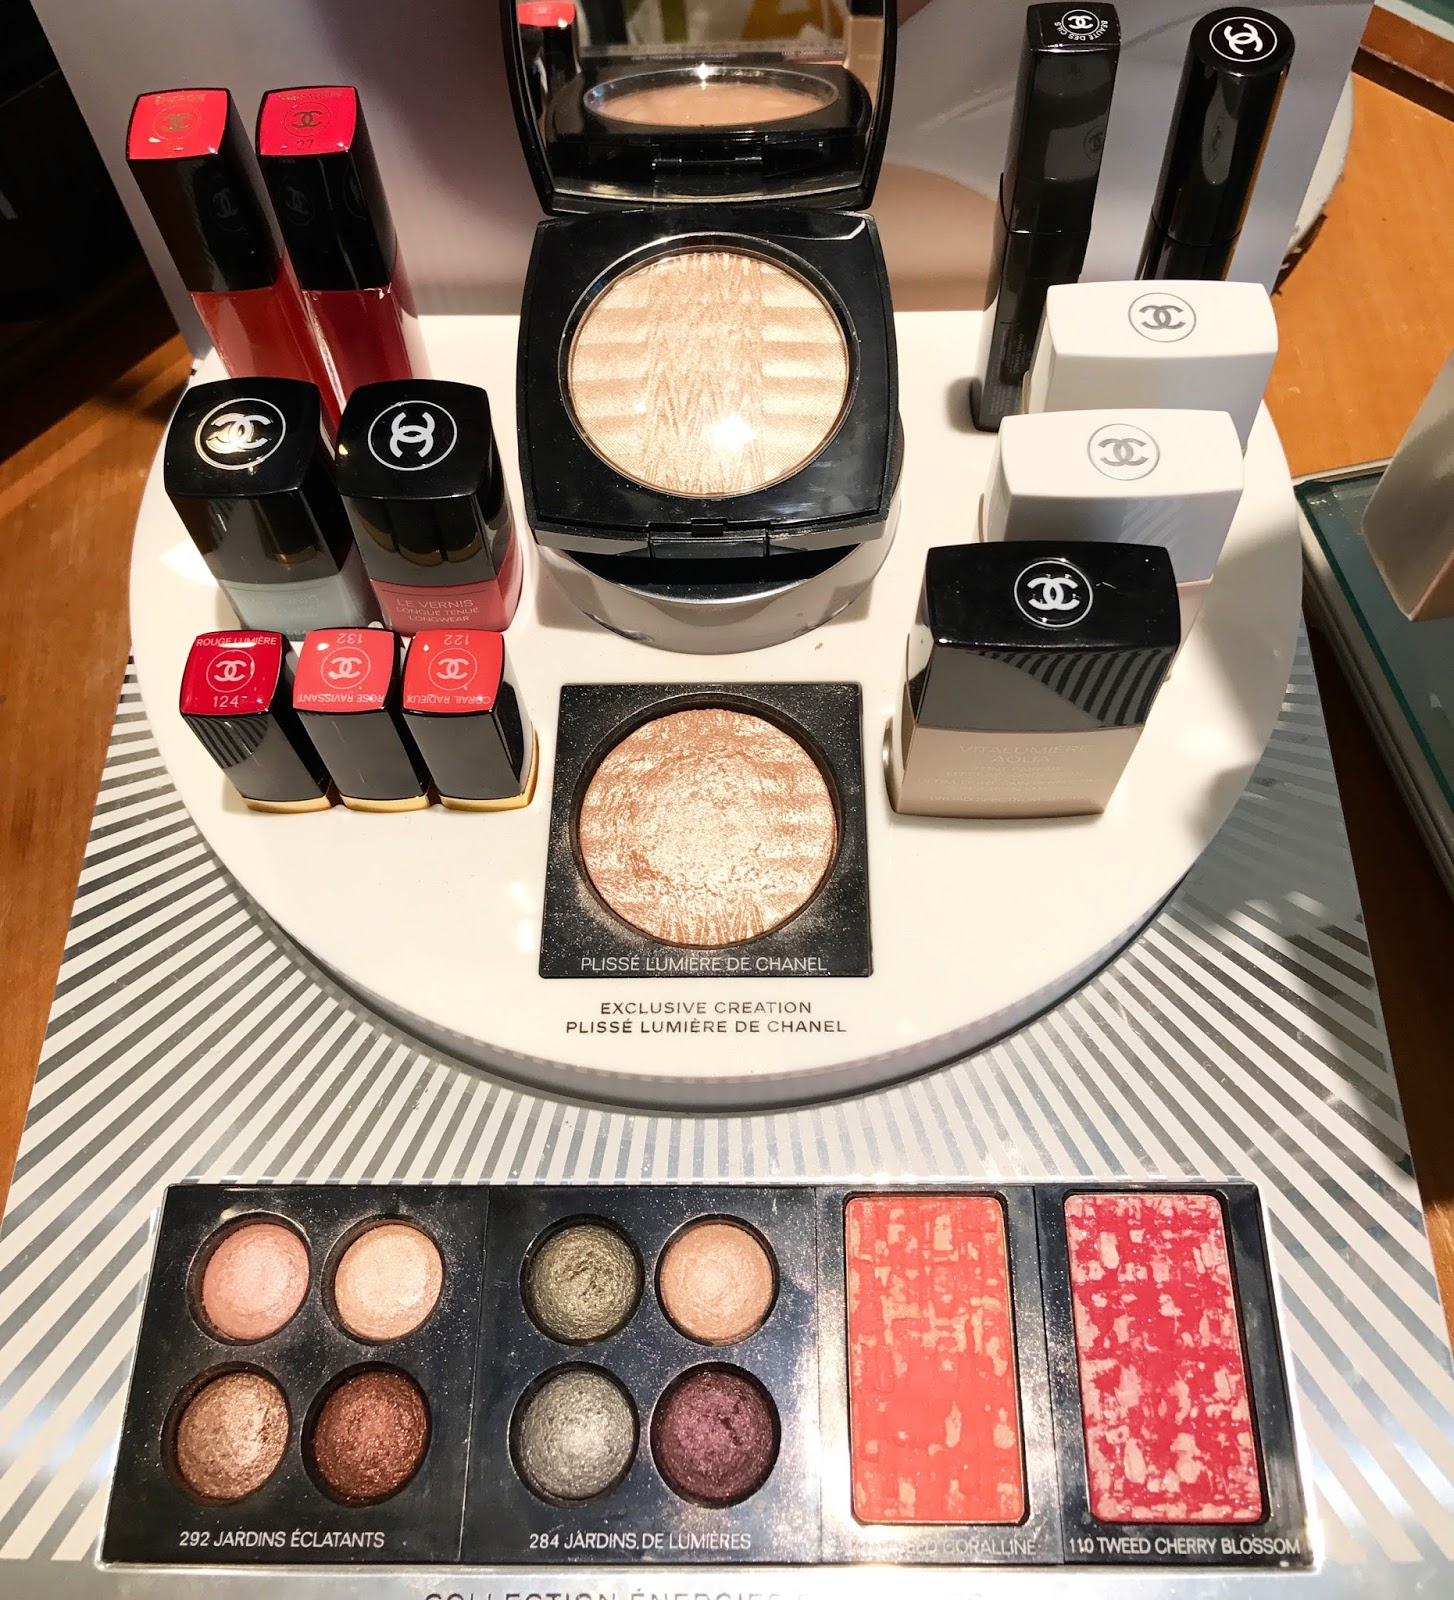 Chanel Energies et Puretes Collection Review Swatches Tweed Coralline Cherry Blossom Blush Plisse Lumiere de Chanel Jardins Eclatants Jardins de Lumiere Energie Vibration Corail Radieux Rose Ravissant